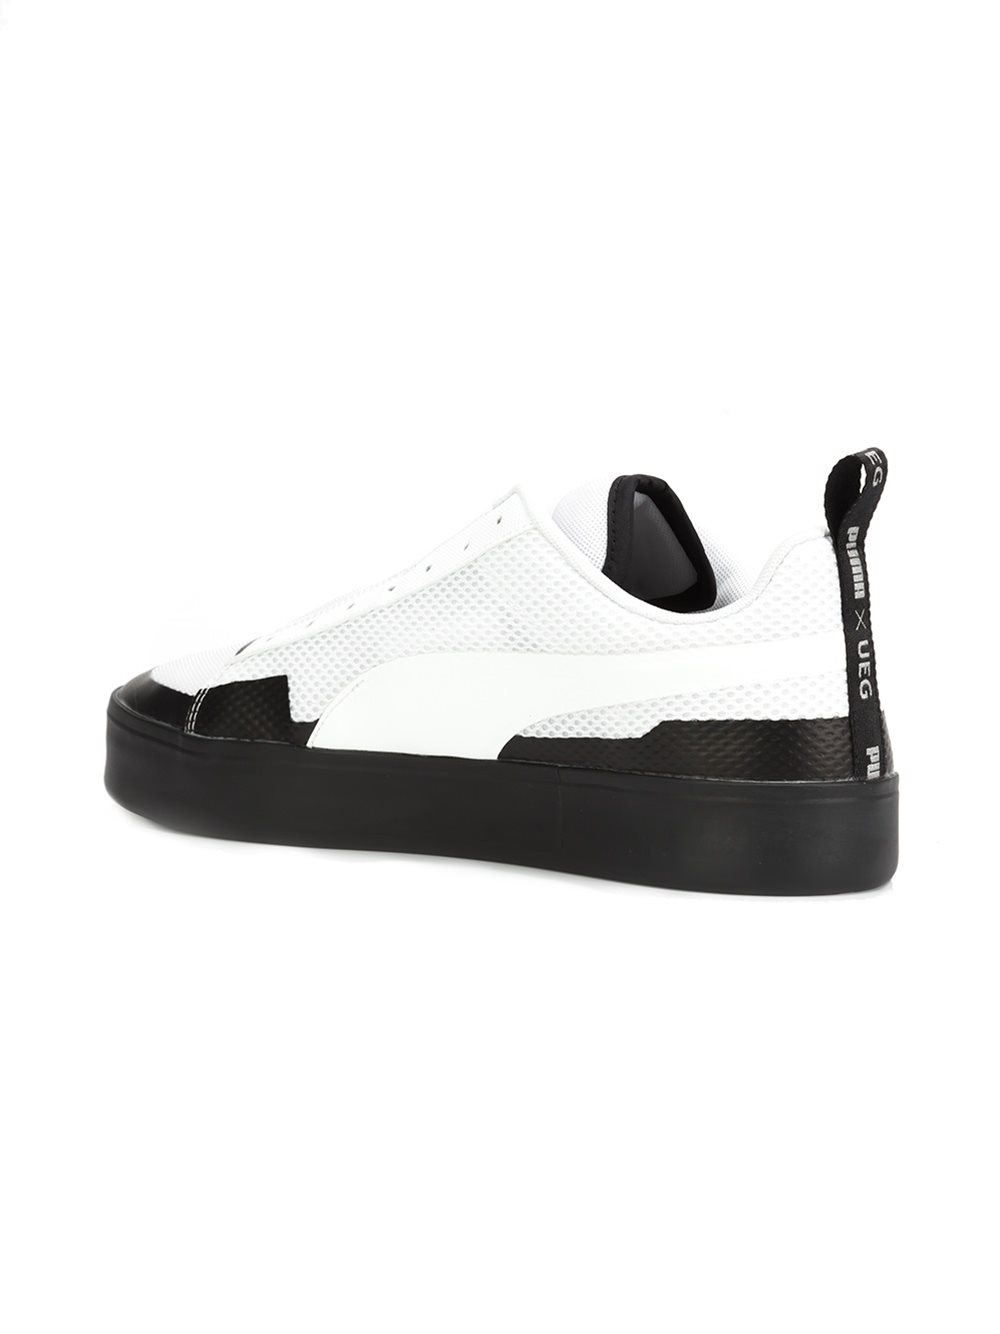 da30fd5bf PUMA 'ueg X Court Play' Laceless Sneakers in White for Men - Lyst